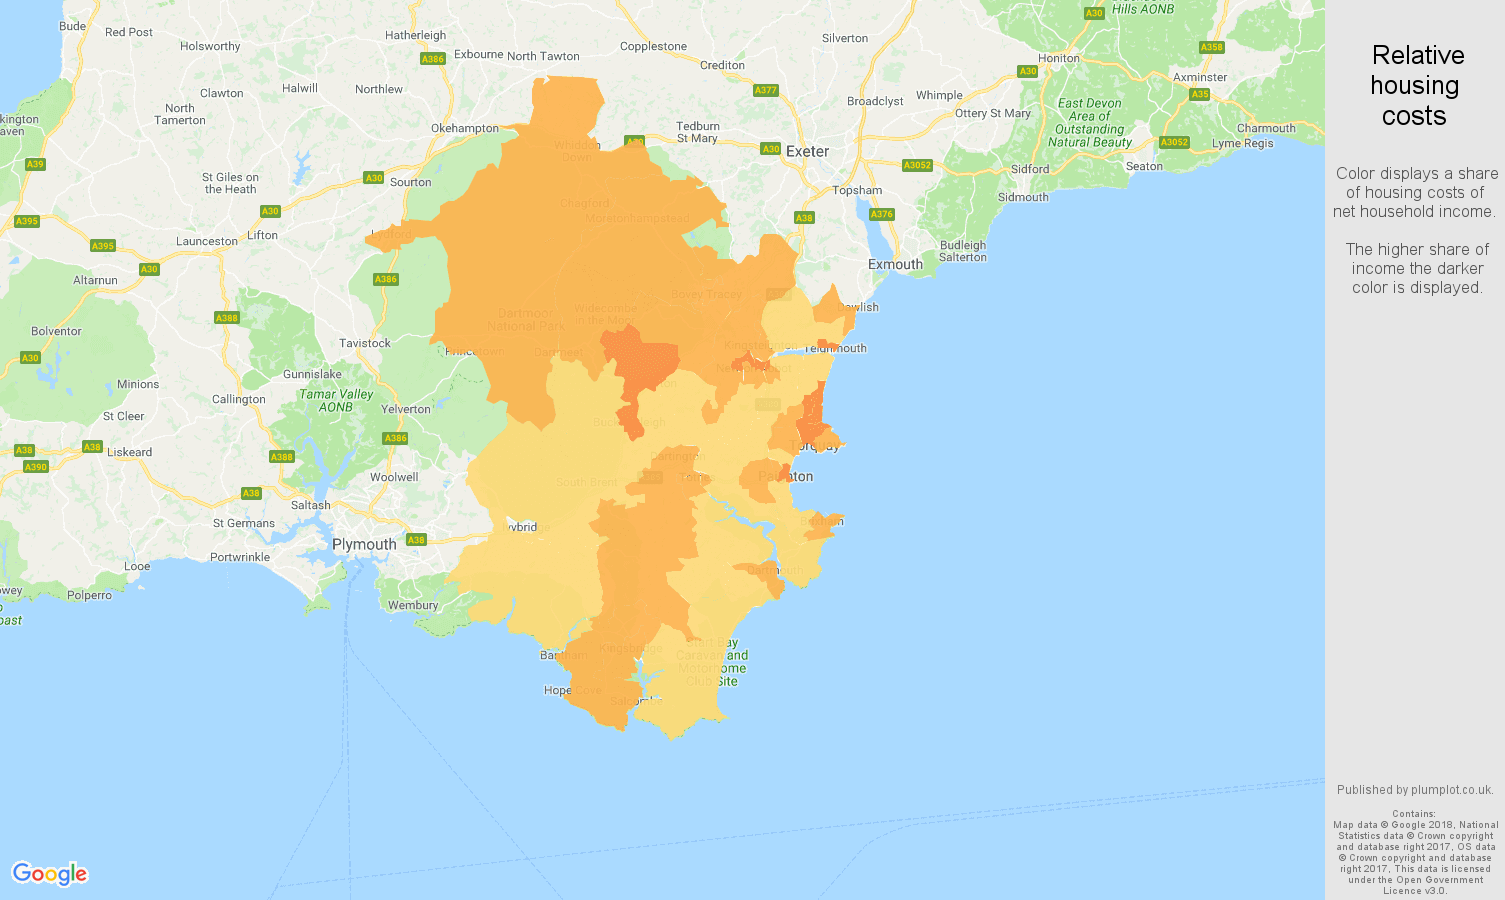 Torquay relative housing costs map